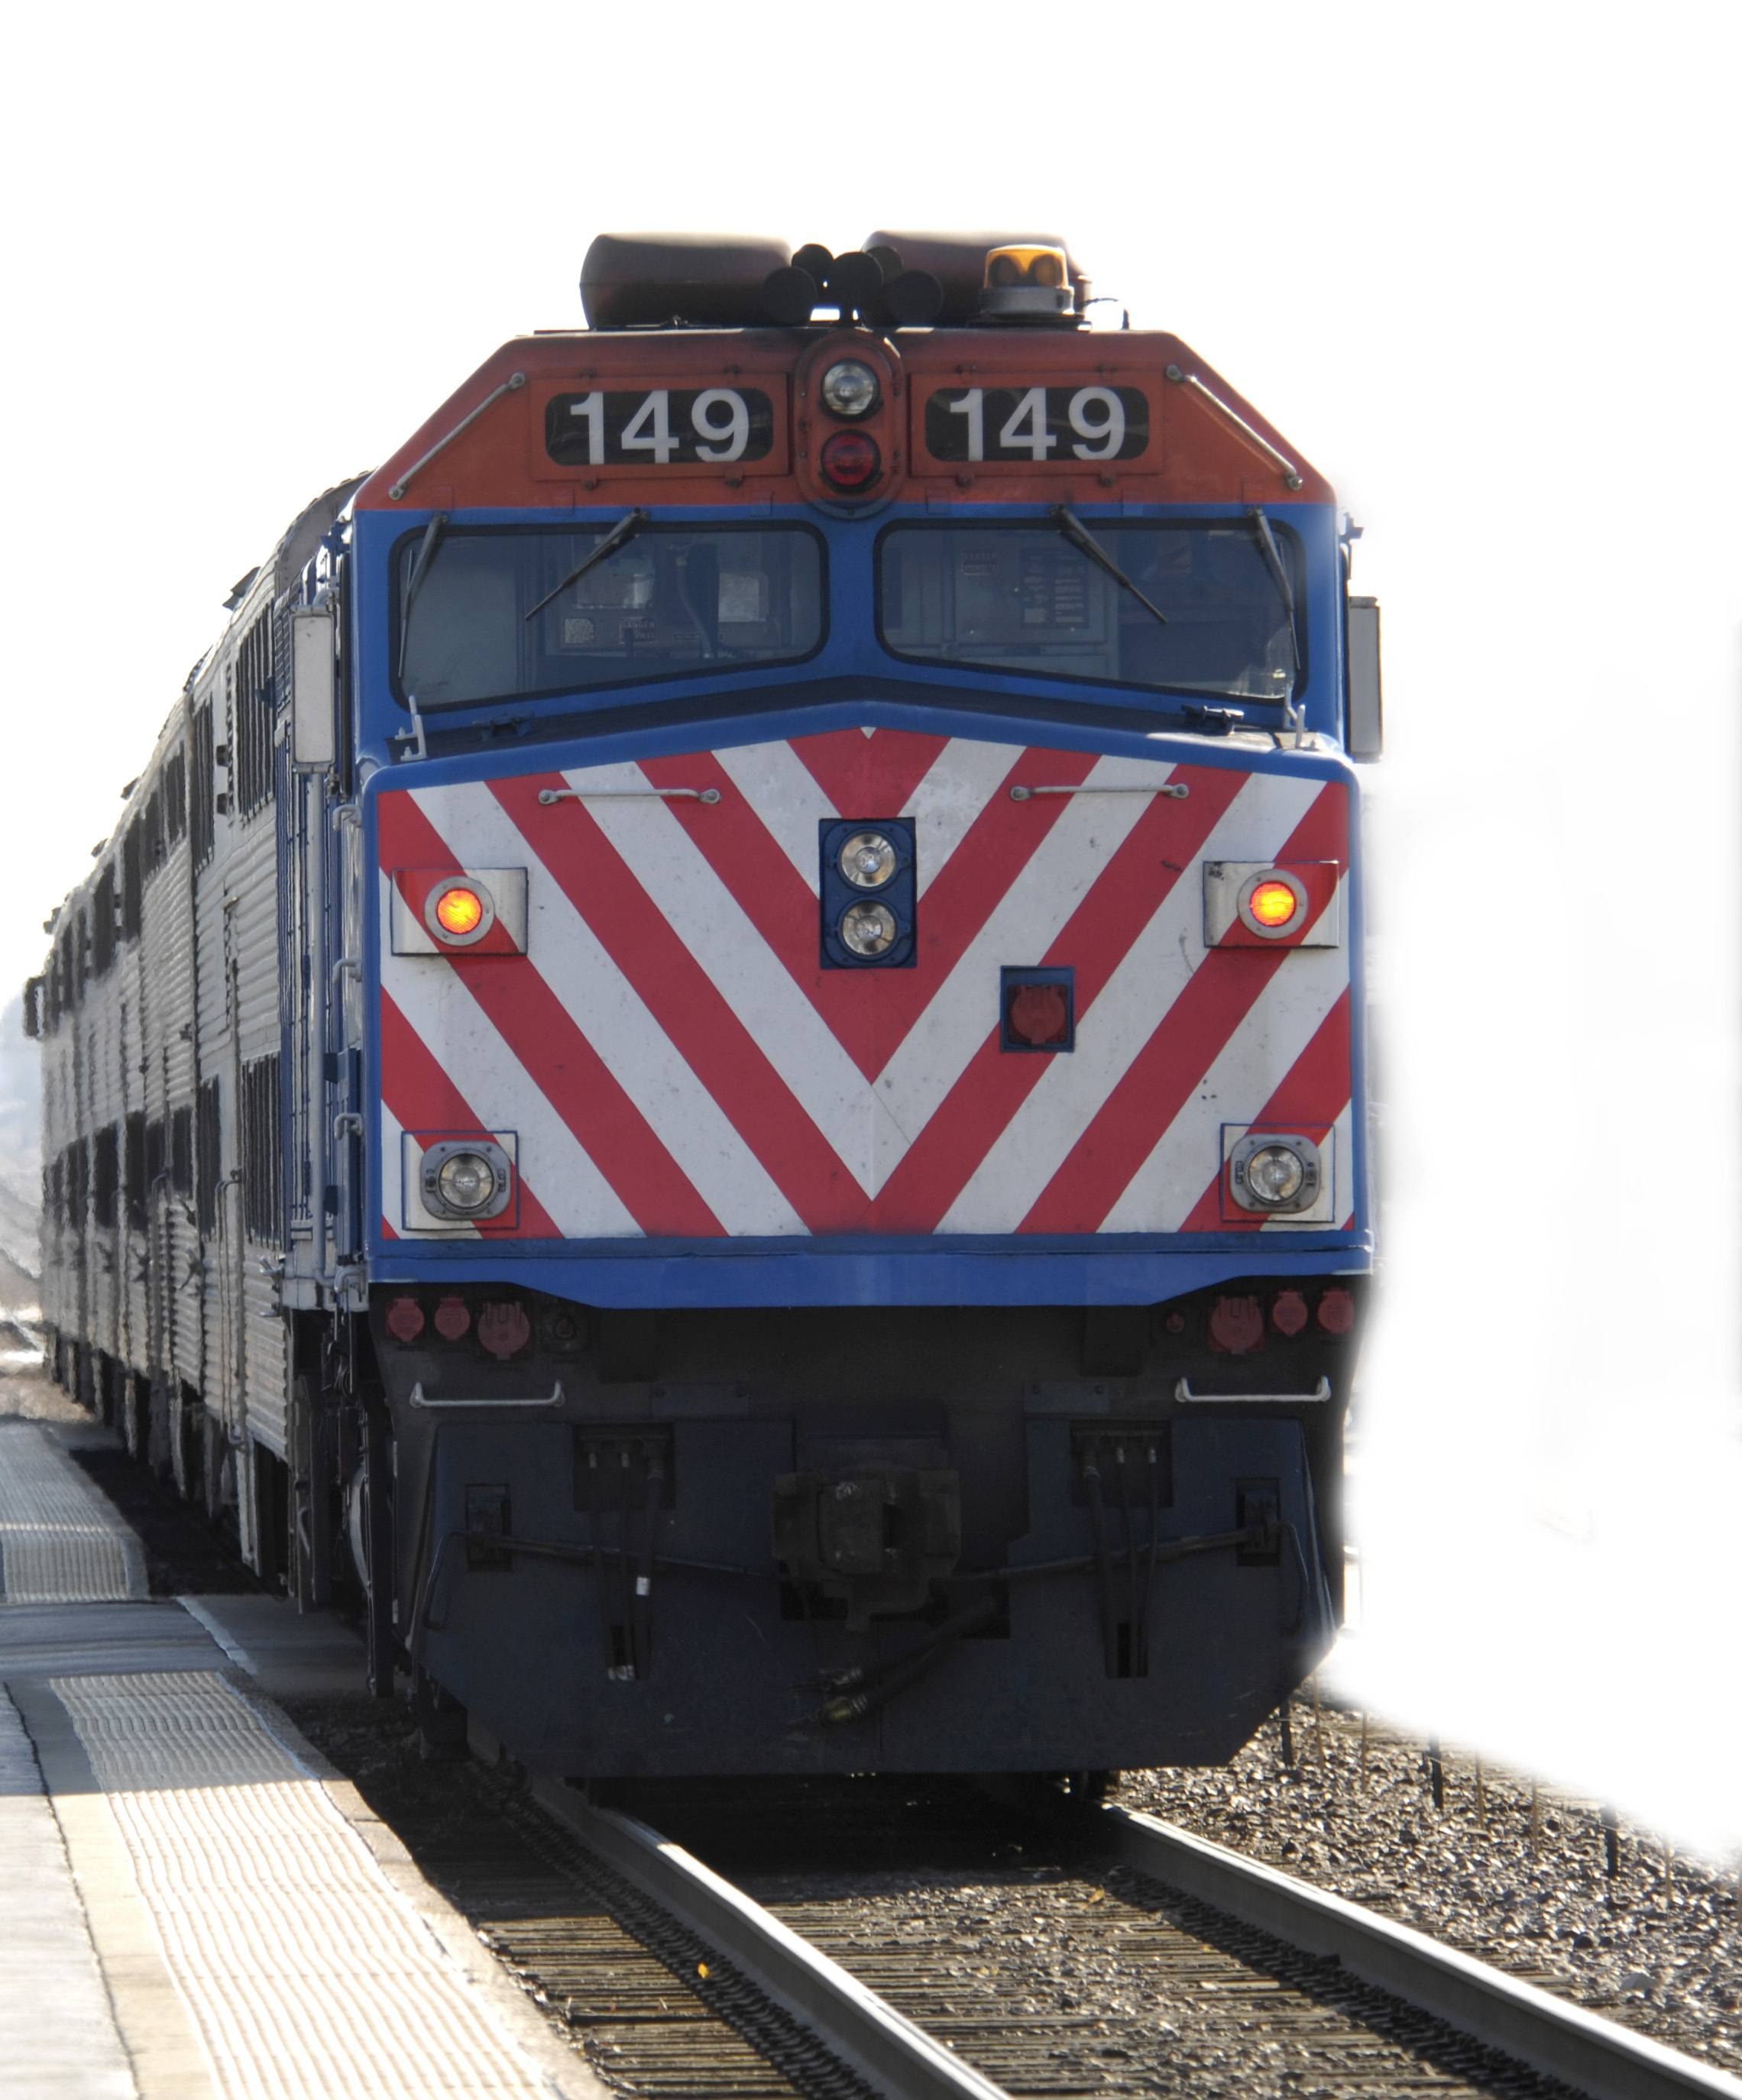 Black police officers at Metra sue railroad for discrimination